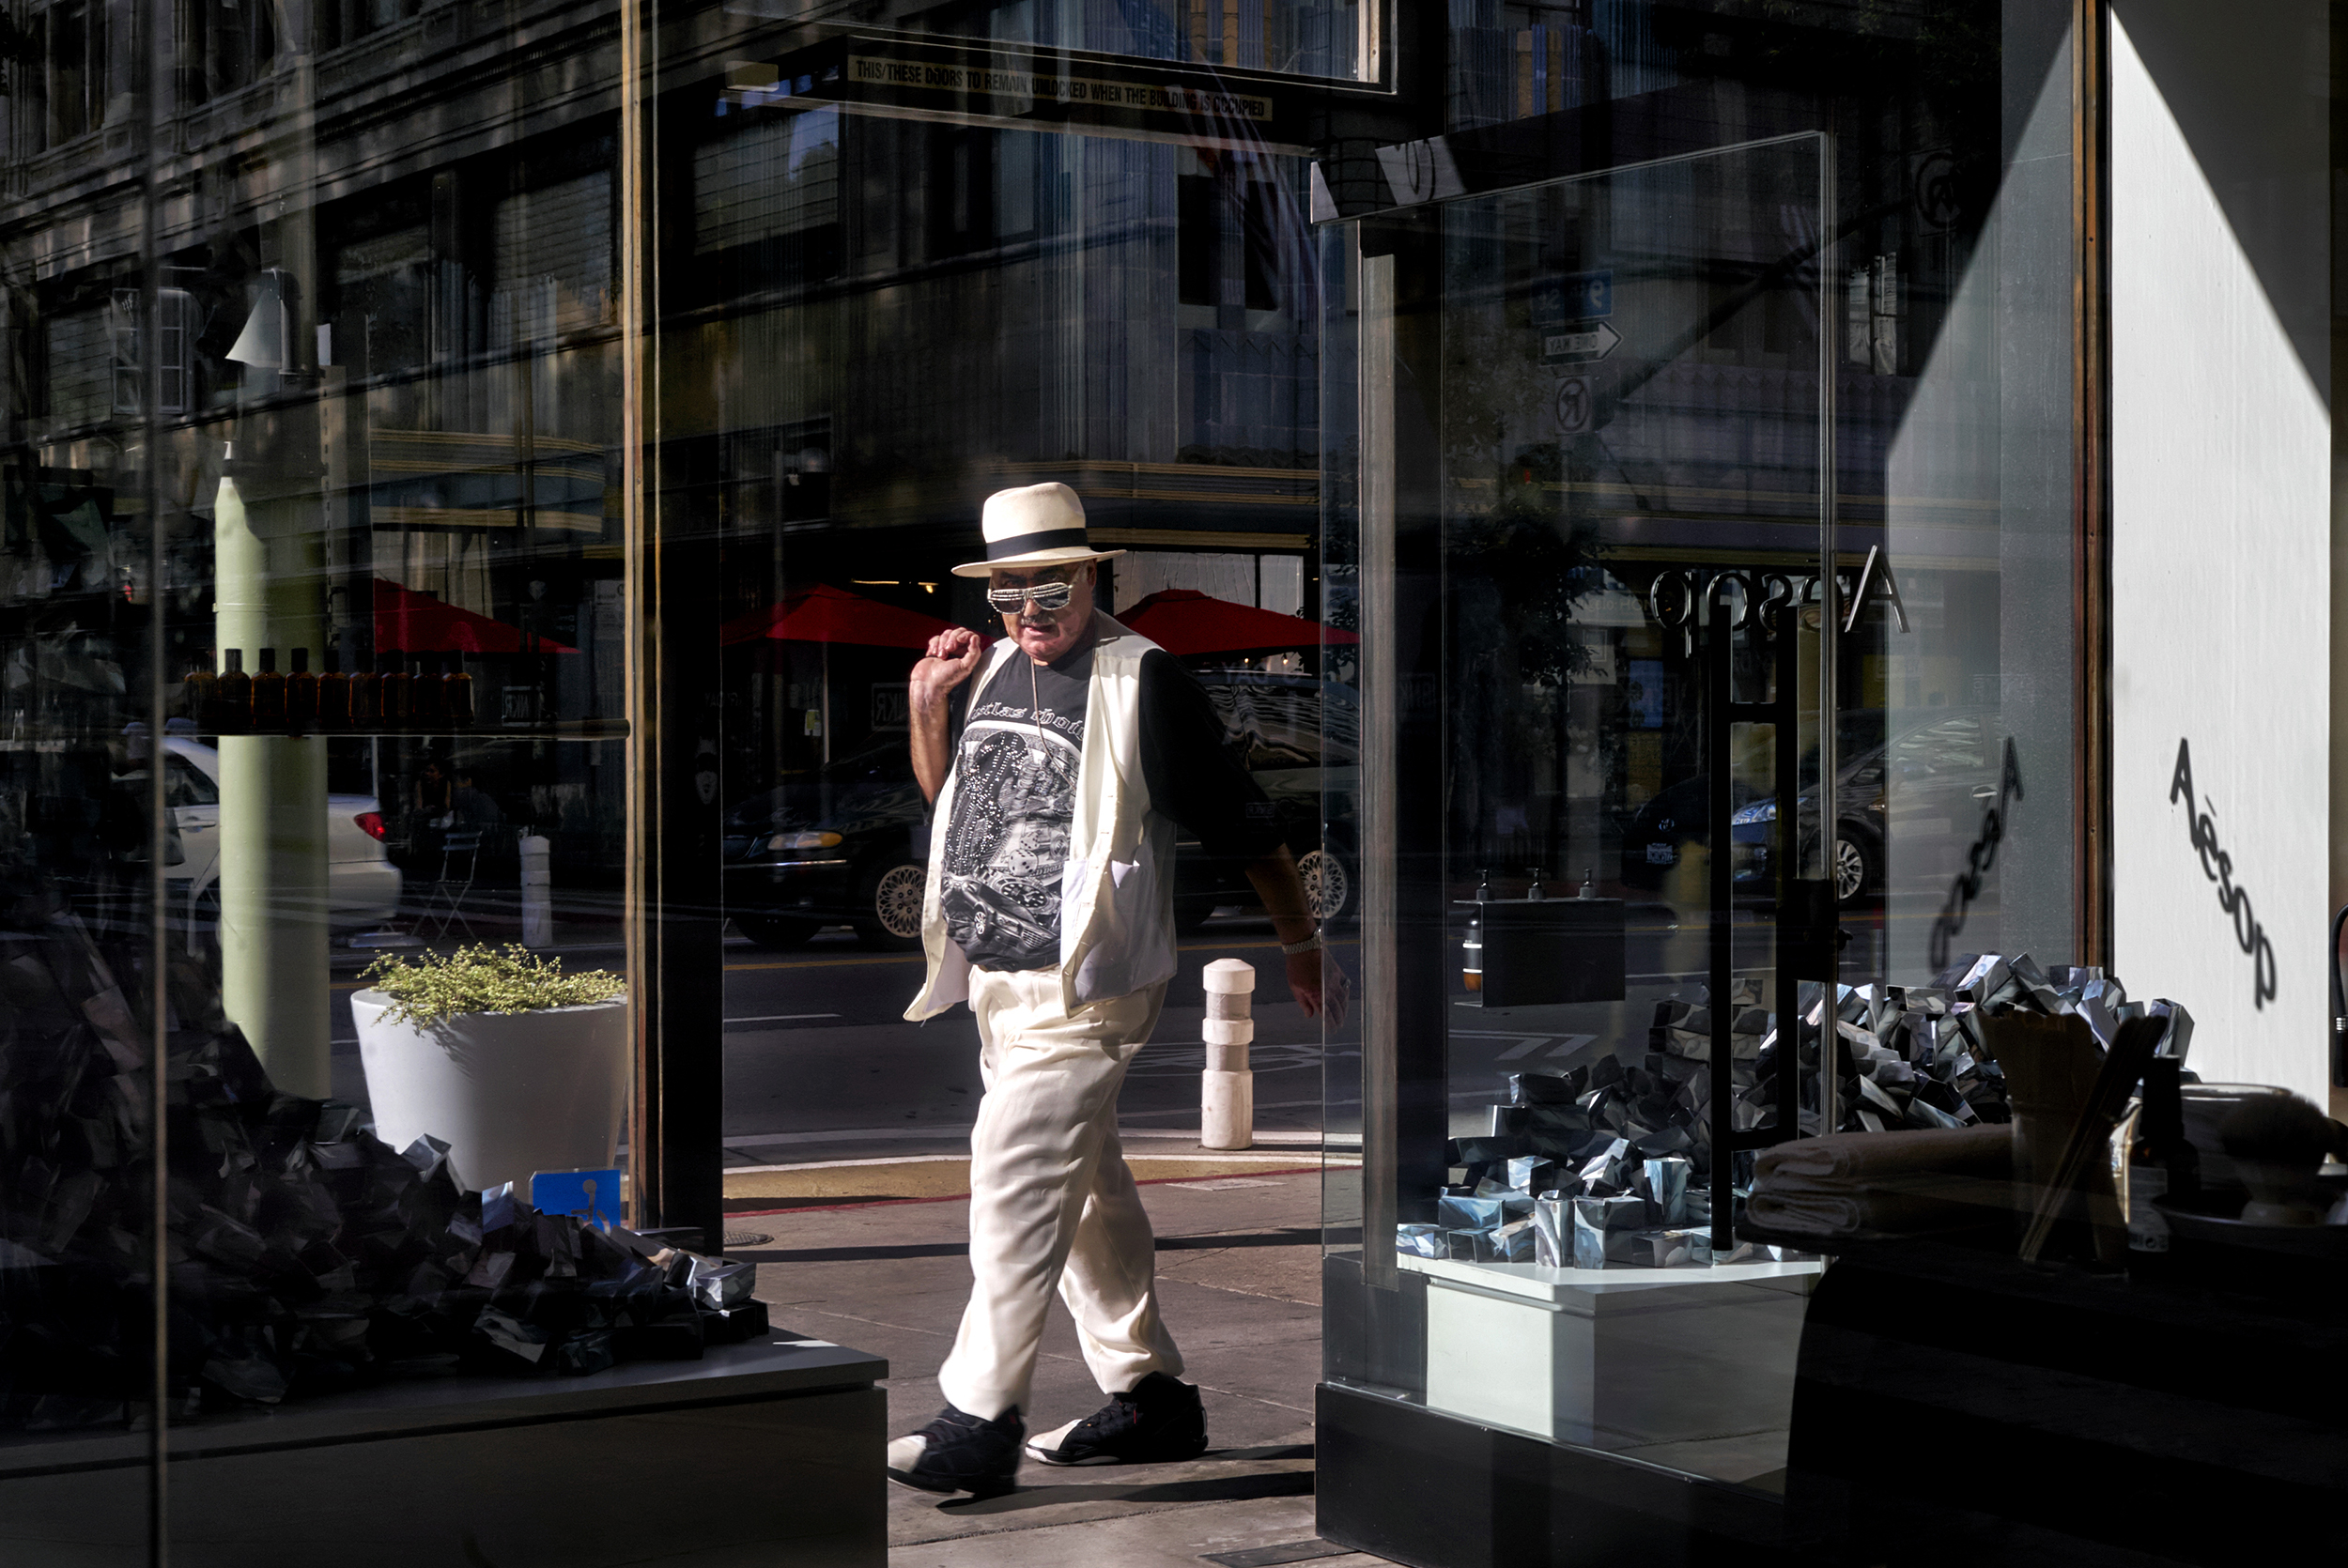 person-walking-by-store-front-dtla-los-angeles-street-photographer.jpg